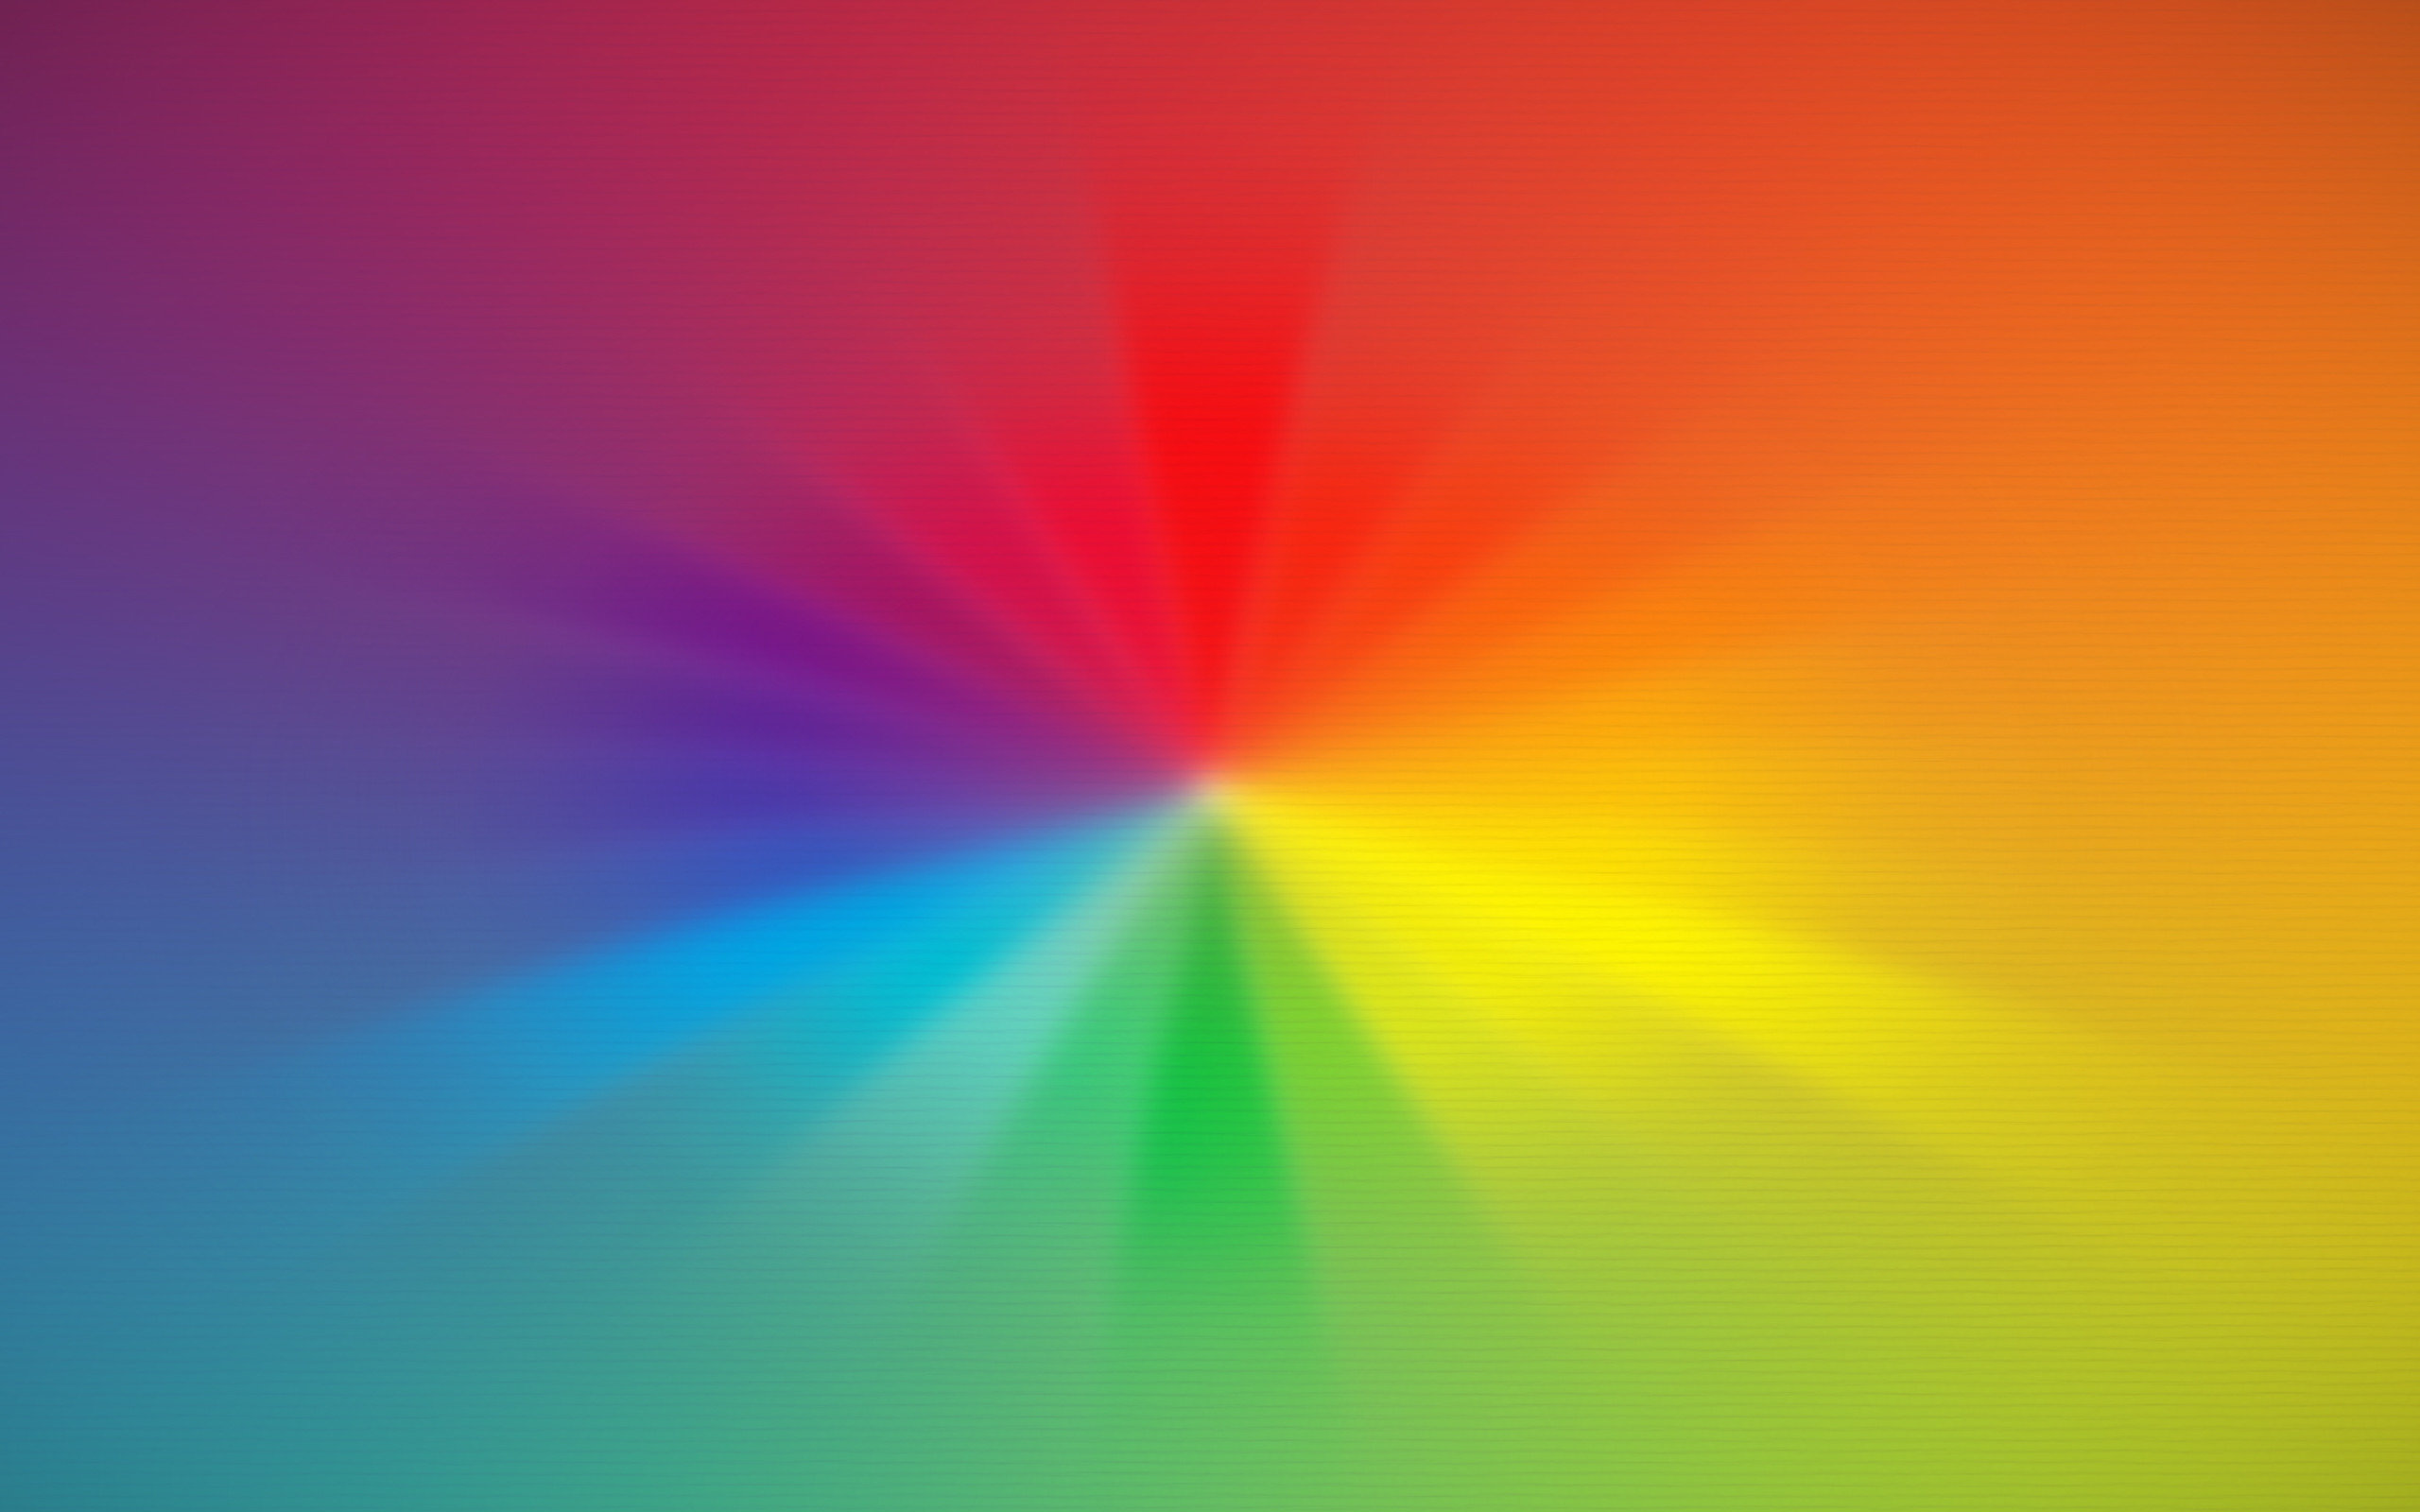 Free Rainbow Pictures | Rainbow Wallpaper Backgrounds | Wallcapture.com